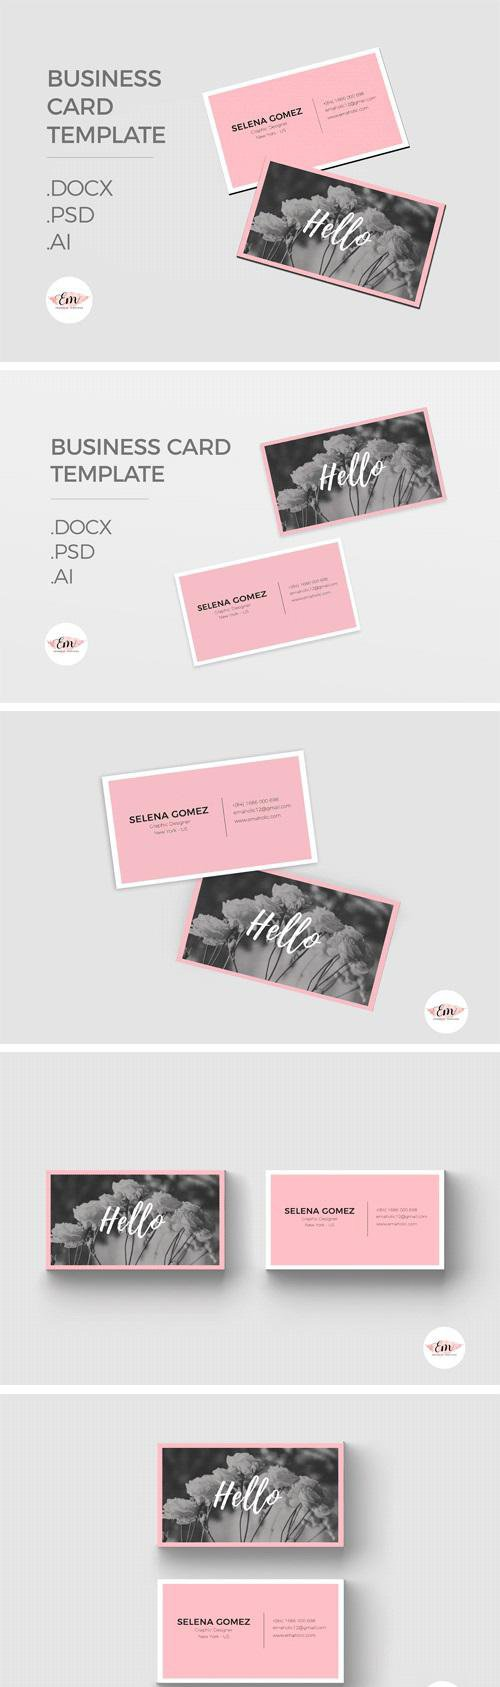 Elegant Business Card Template - 1340846